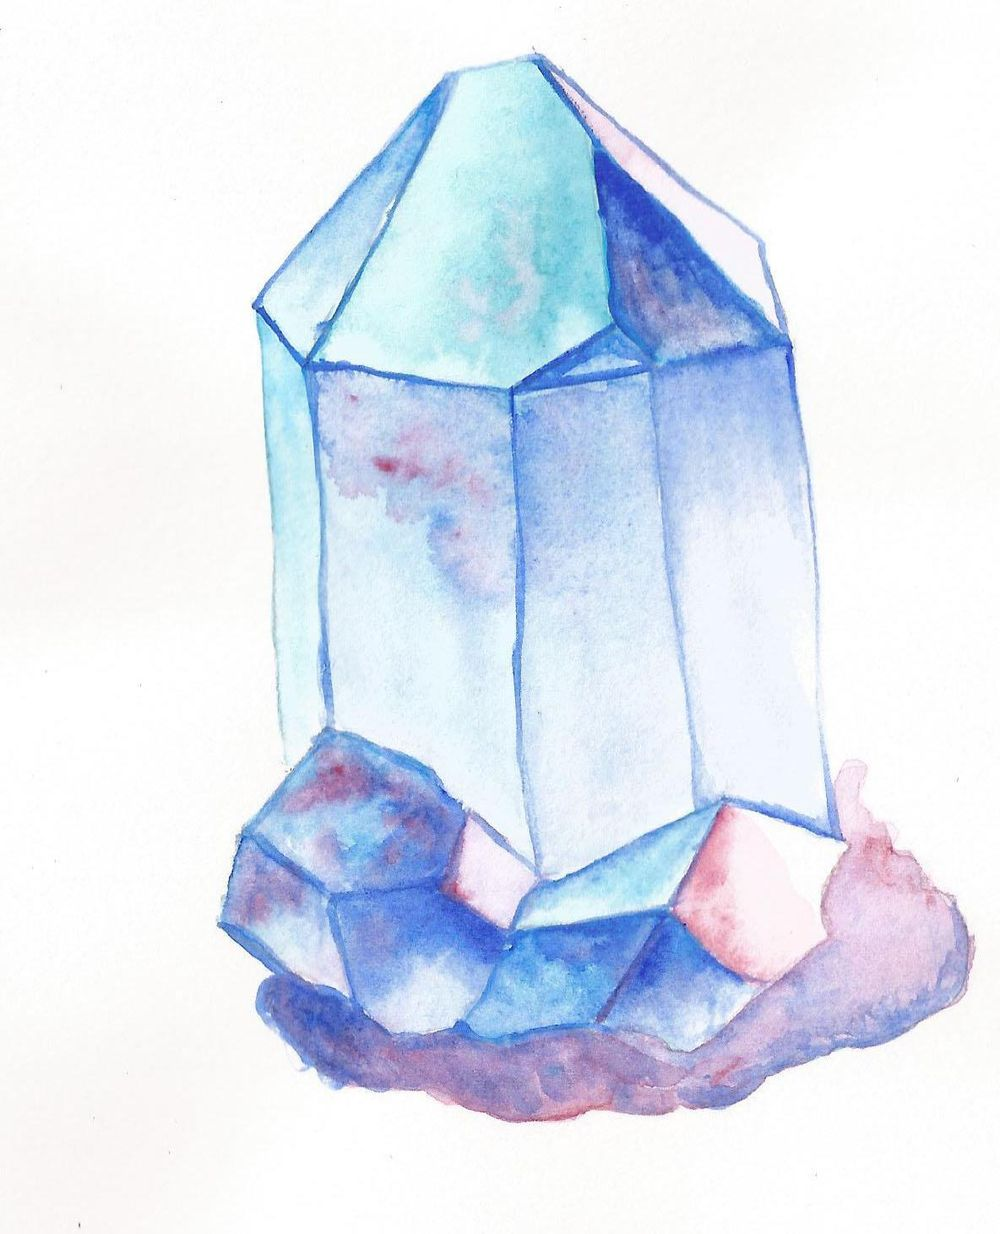 Crystal - image 1 - student project